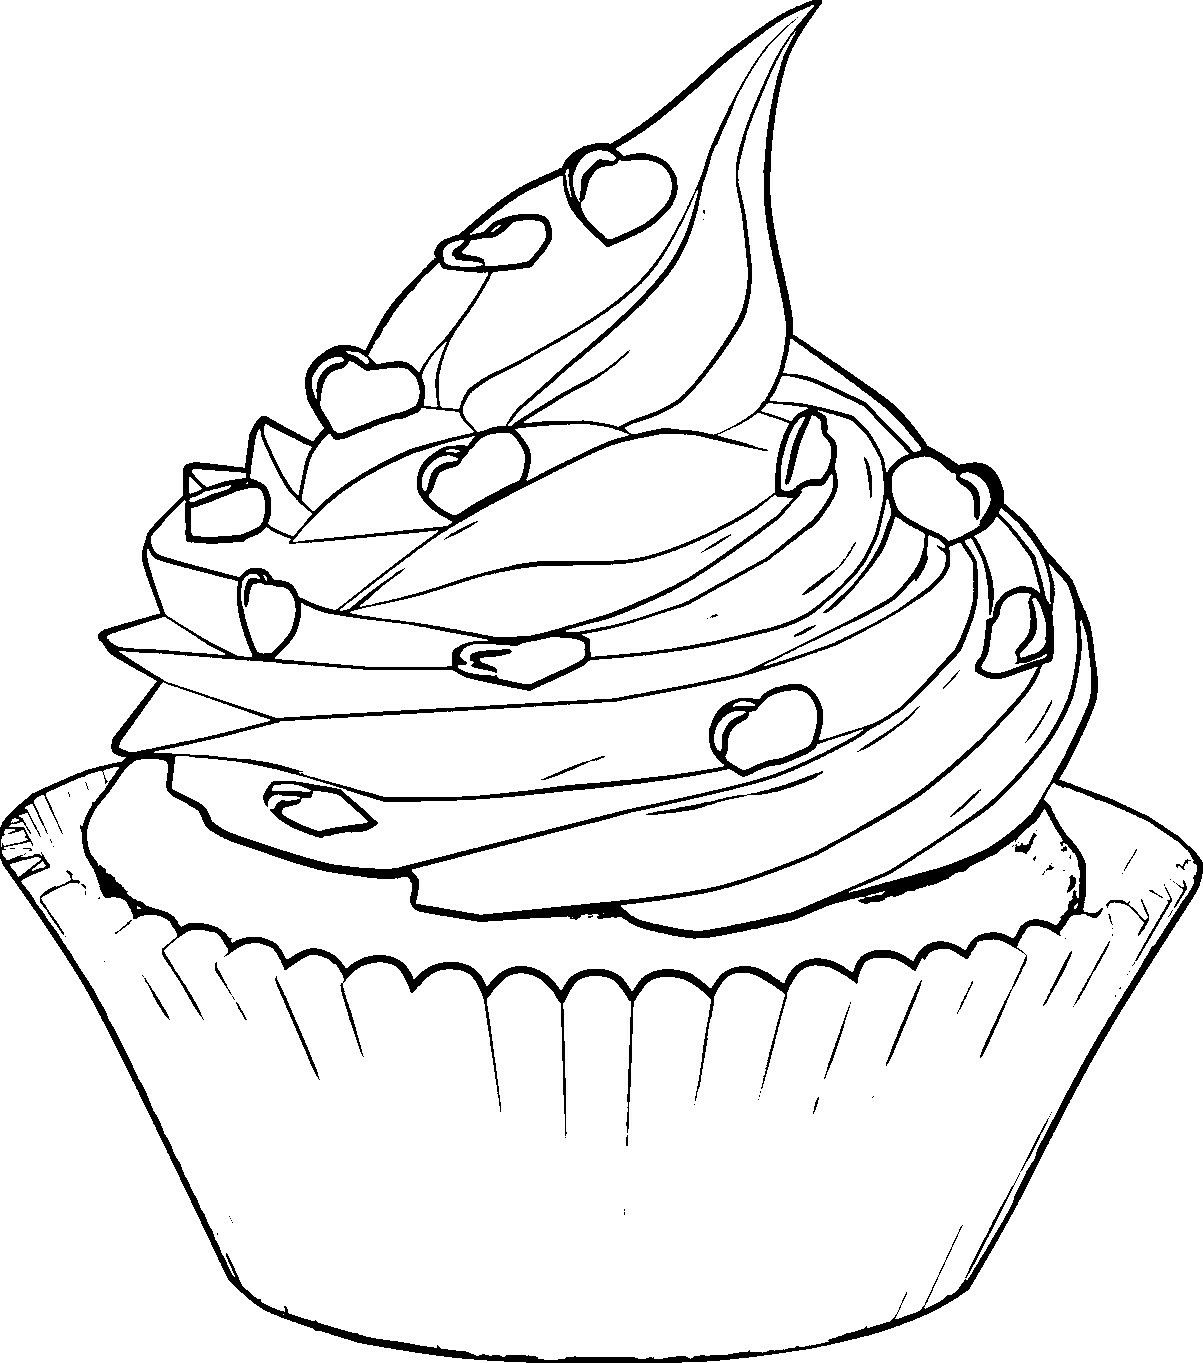 Pin by April Ordoyne on ice cream & cupcakes & candy